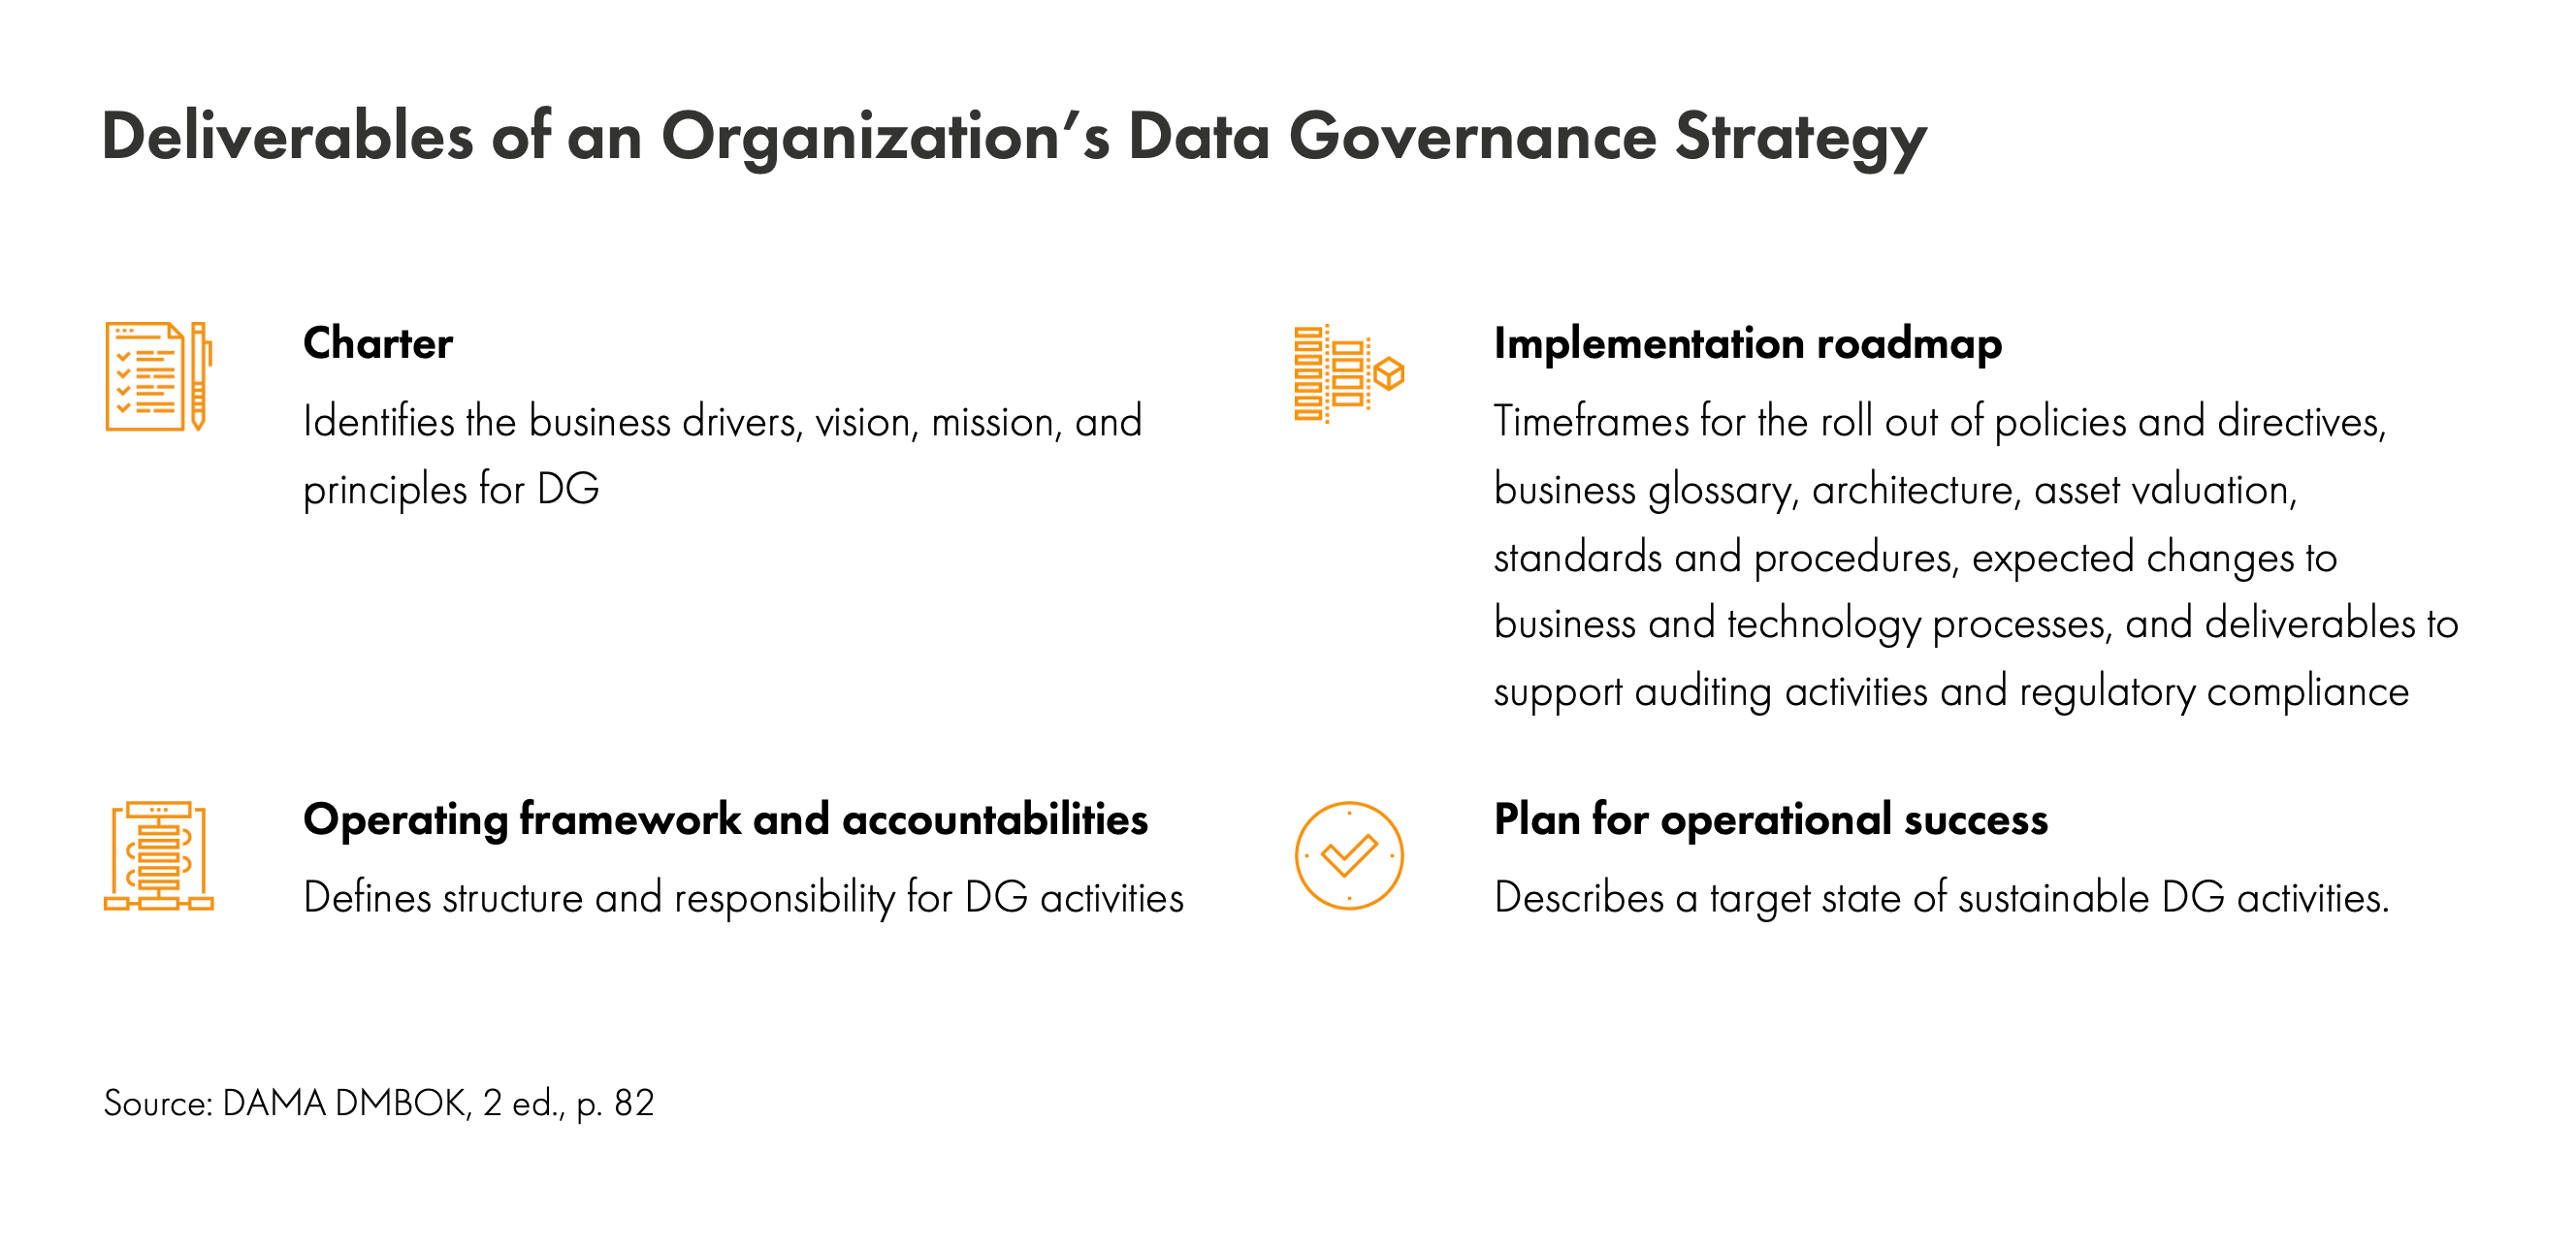 Deliverables of a Data Governance Strategy